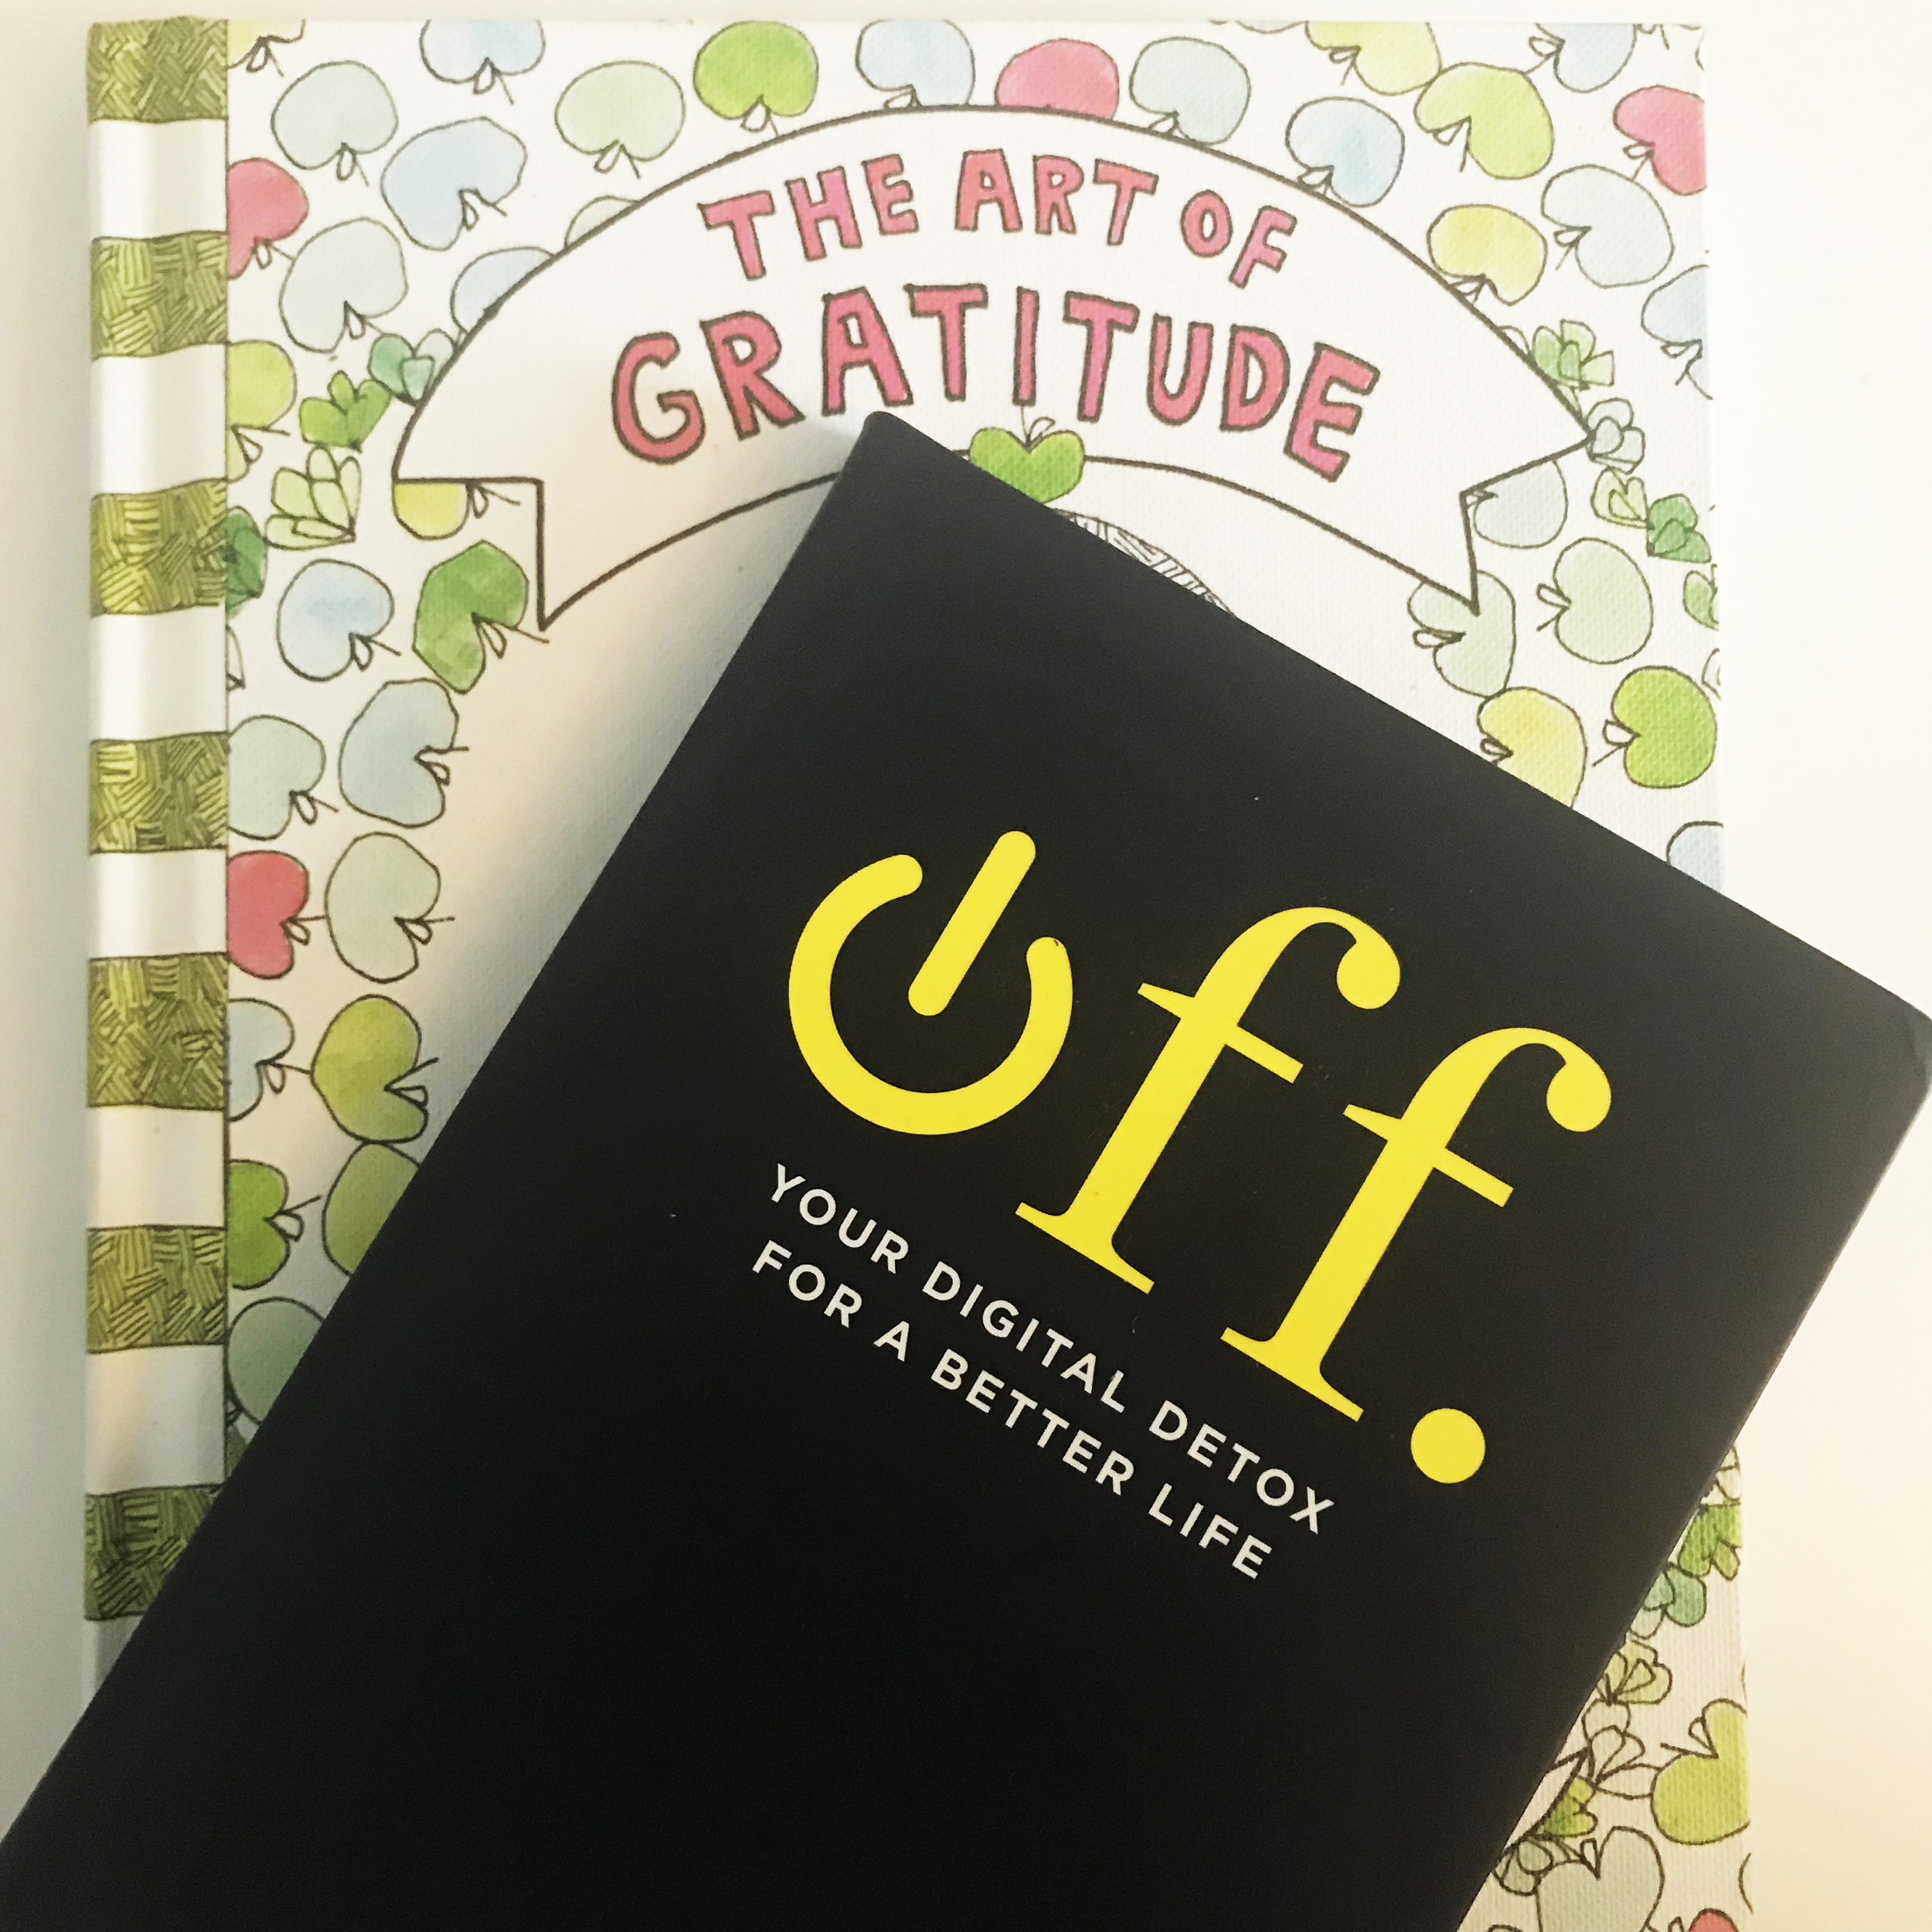 gifts off and gratitude.jpg